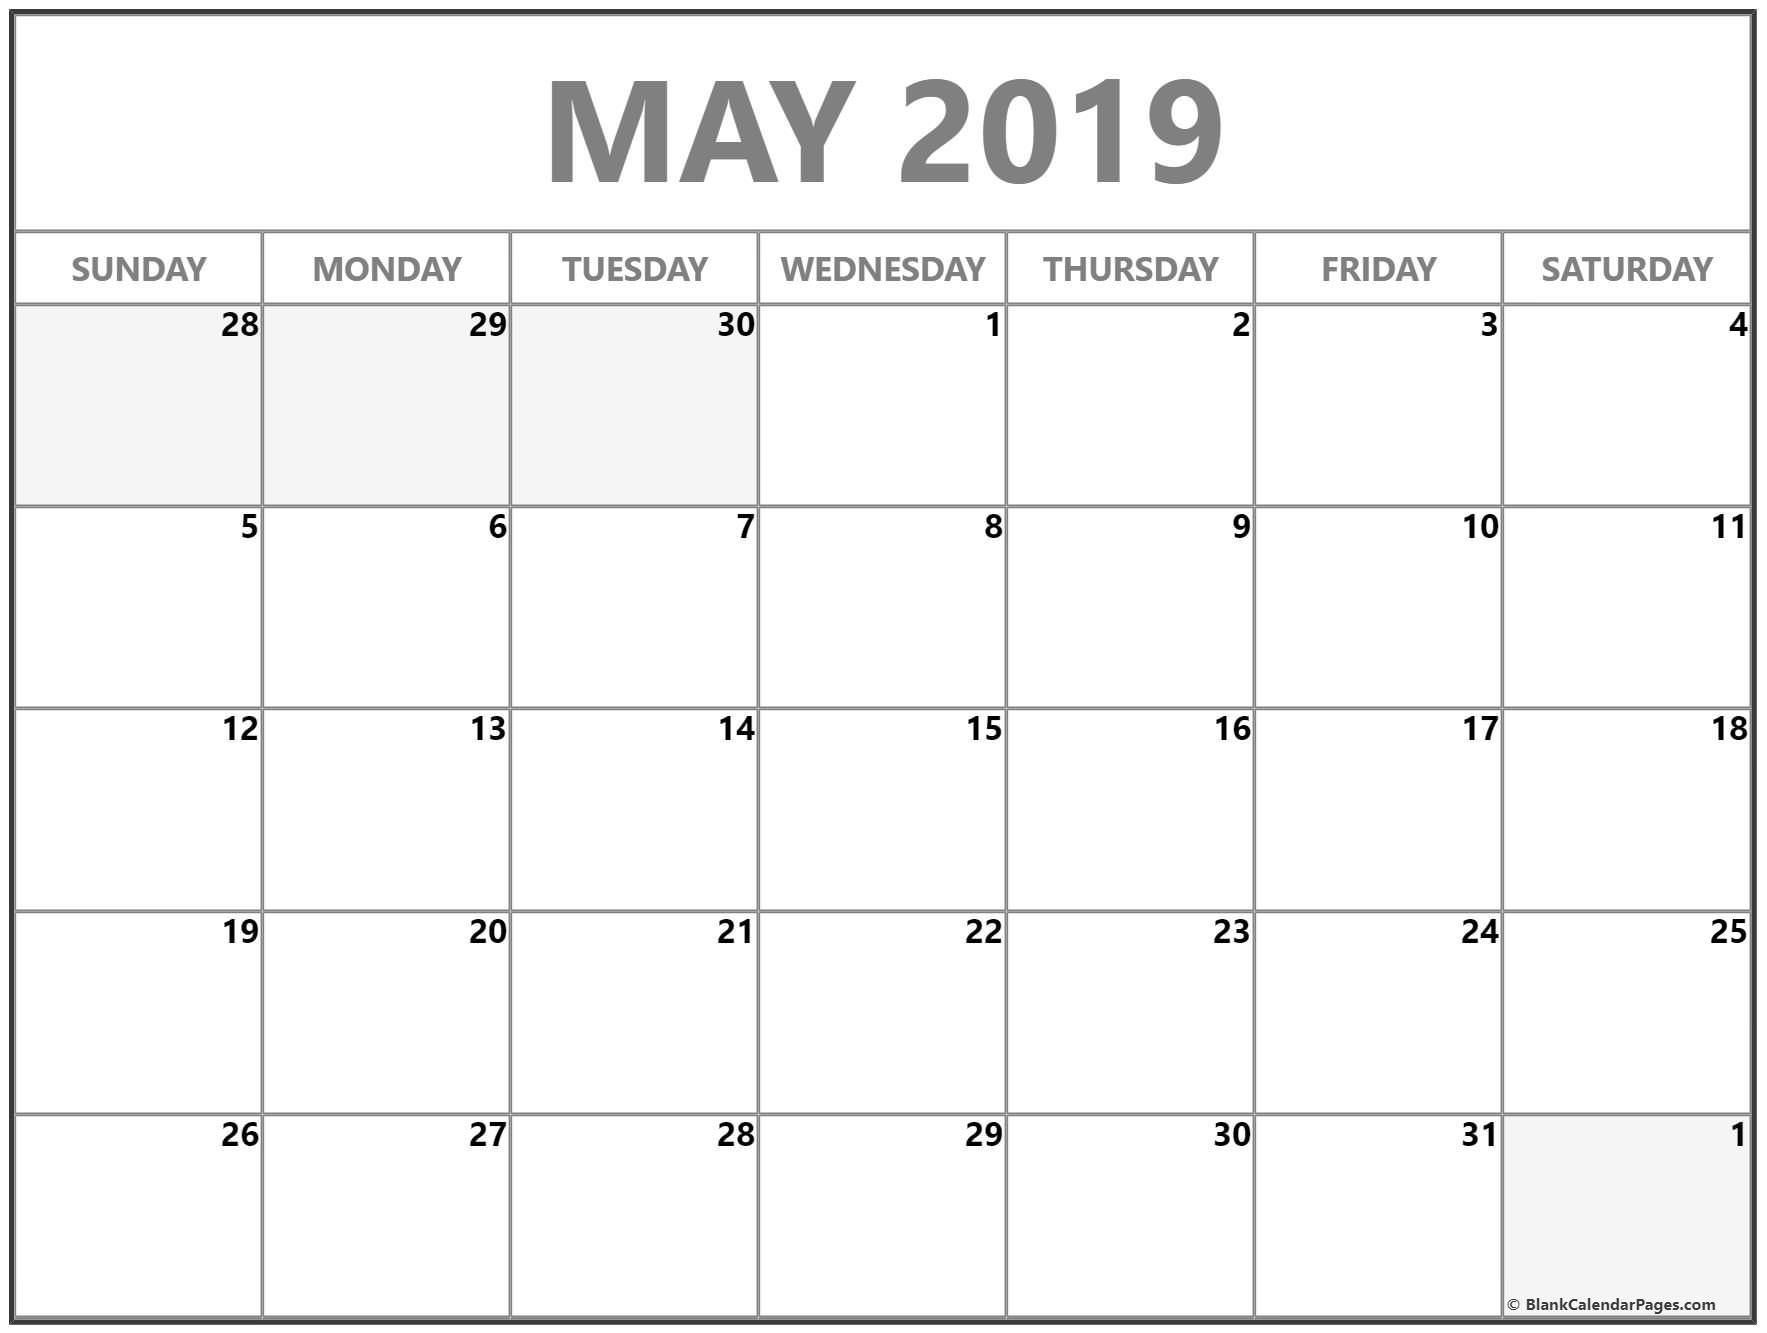 May 2019 Calendar | Free Printable Monthly Calendars within Free Printable Blank Monthly Calendar 2019